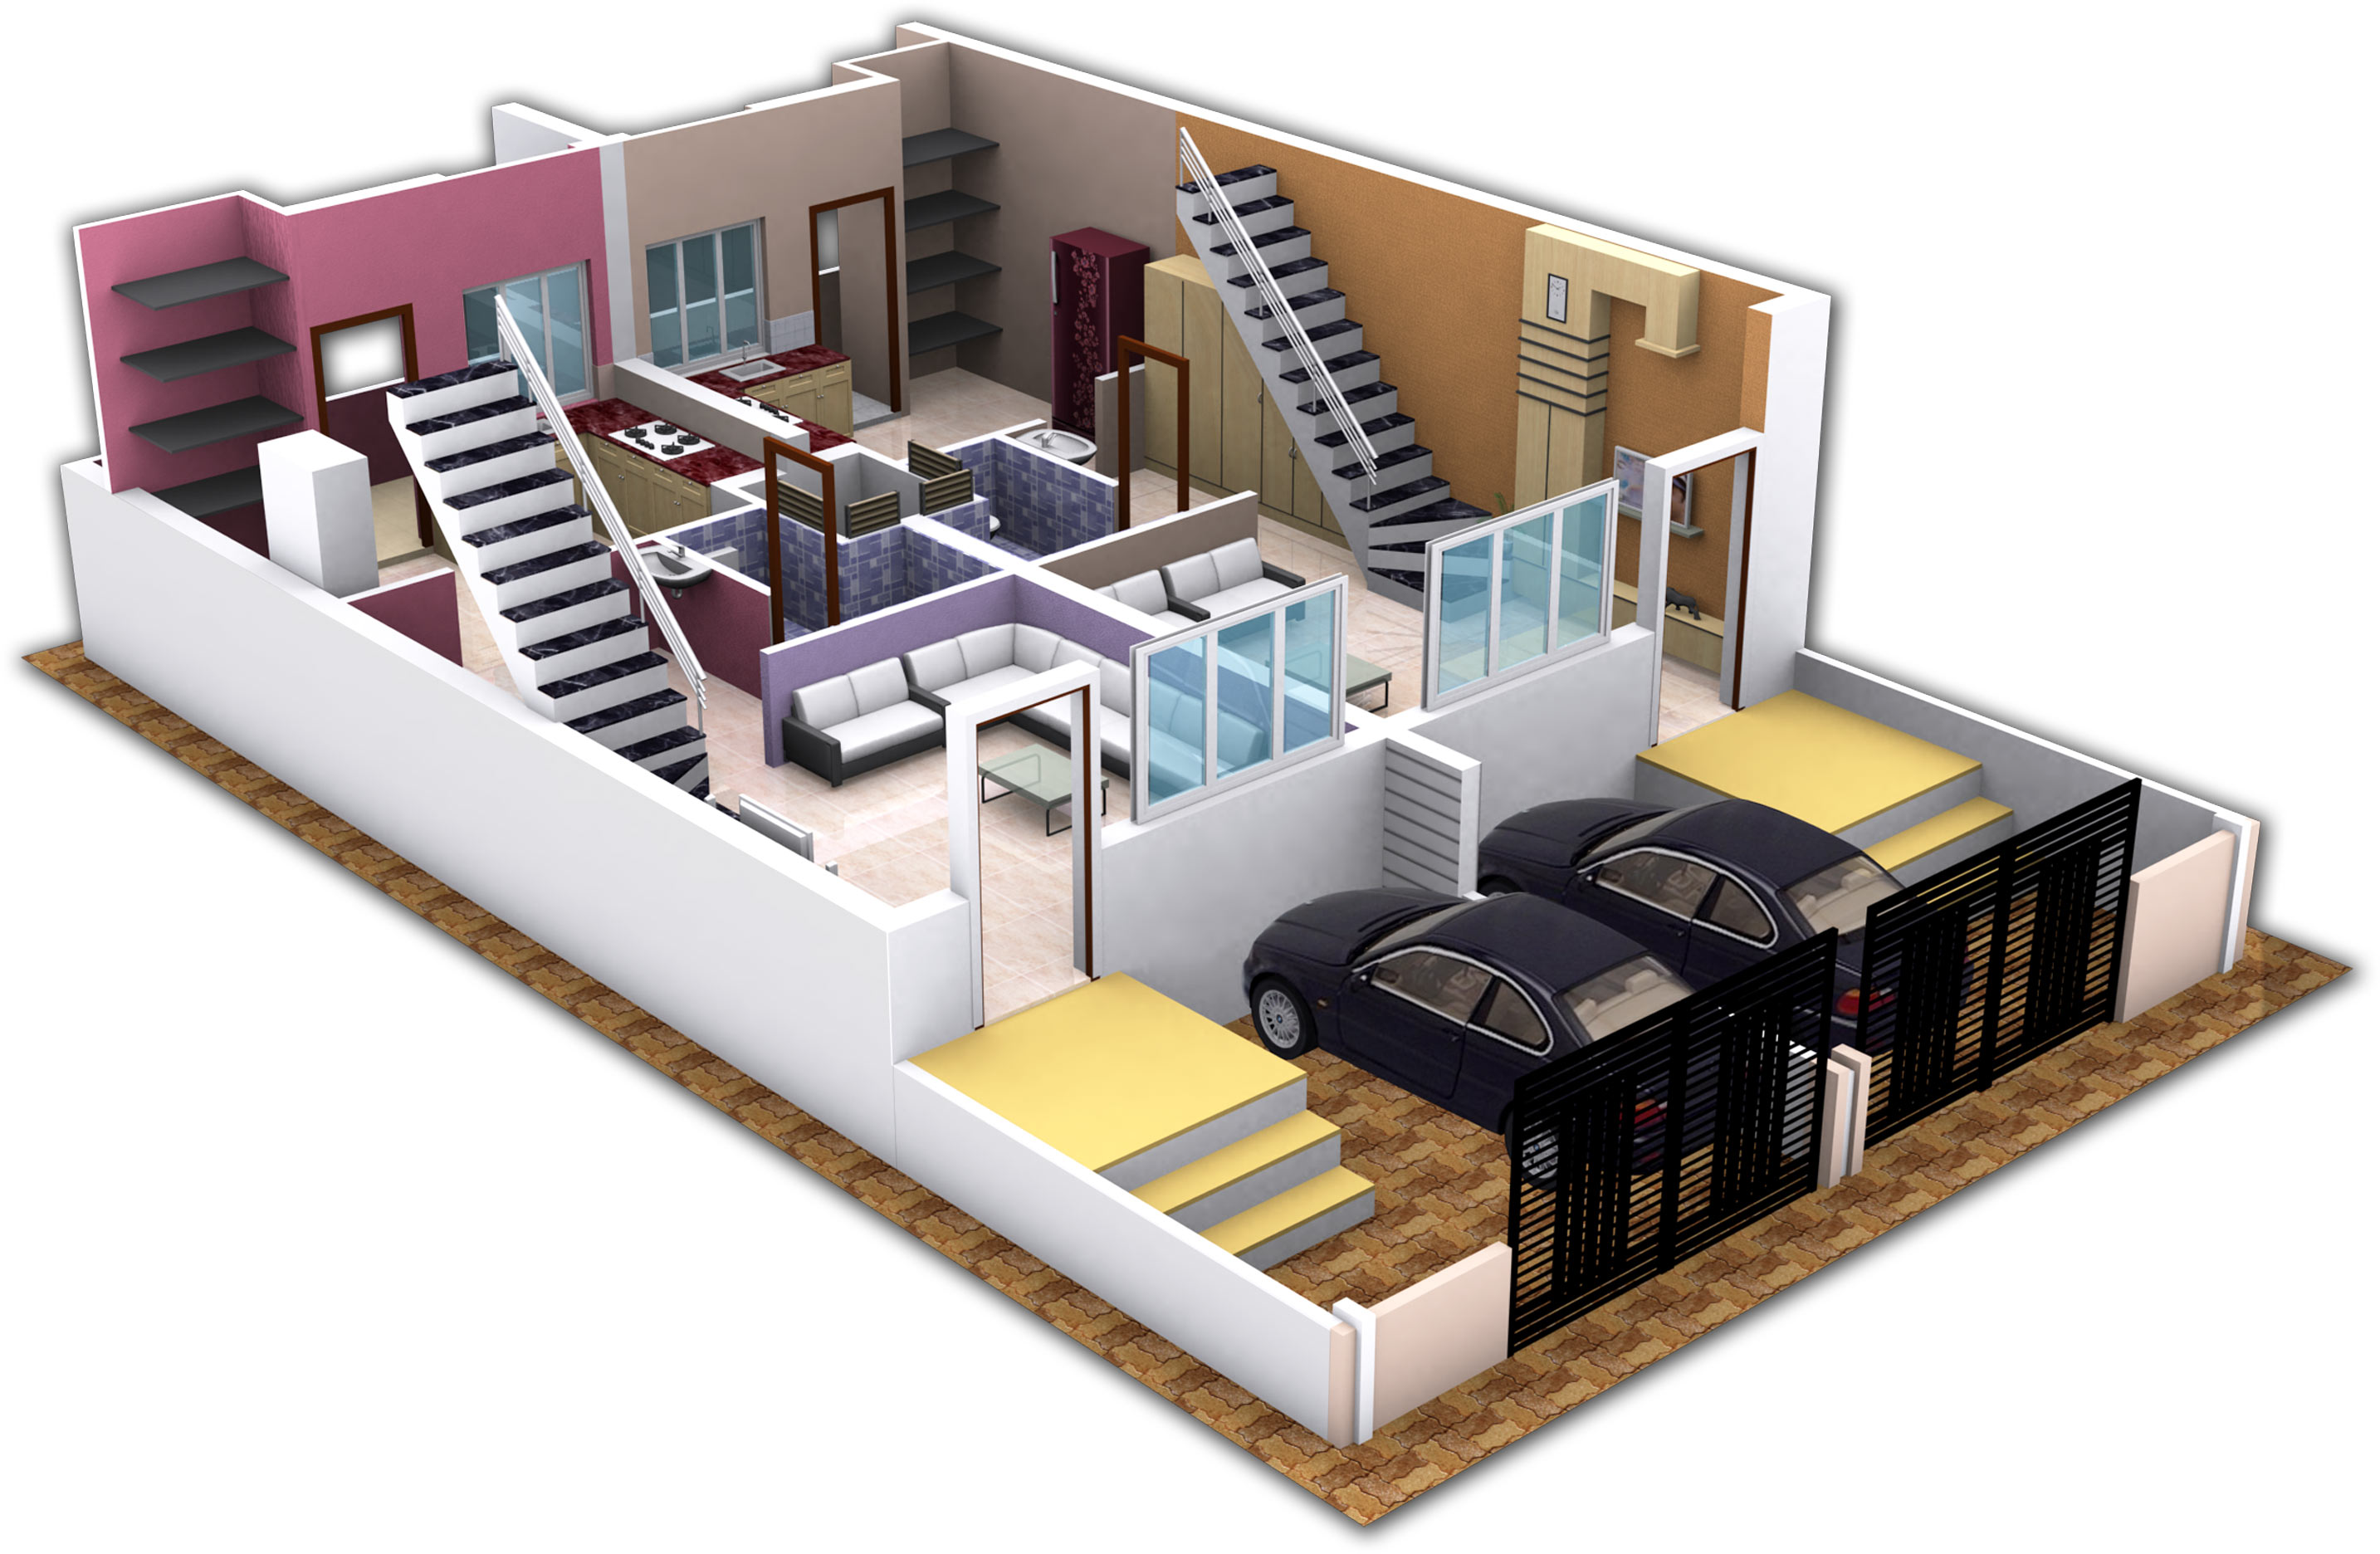 kothari housing project by kothari builders amp developers 3 room floor plans for extension 3 best home and house